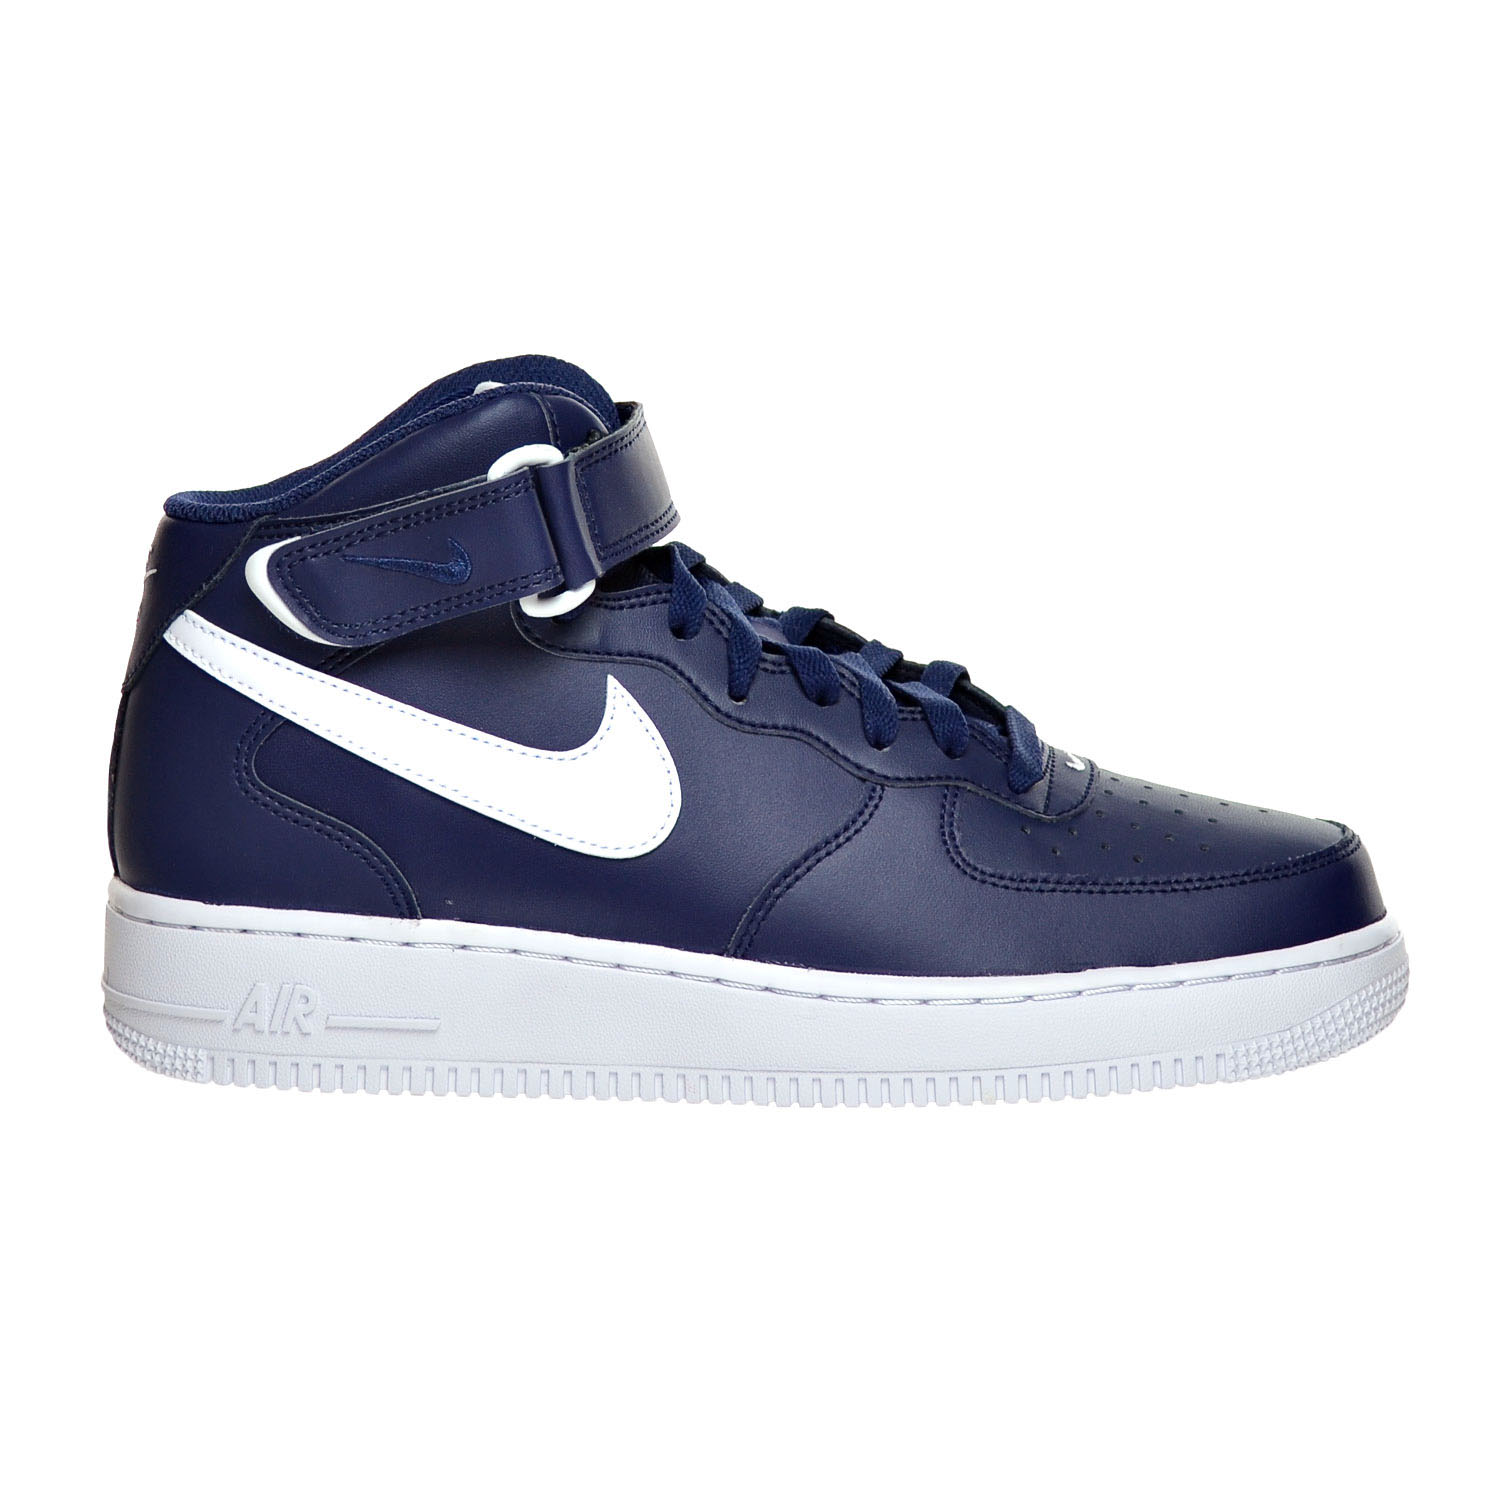 Nike Air Force 1 Mid '07 Men's Shoes Midnight Navy White 315123-407 by Nike